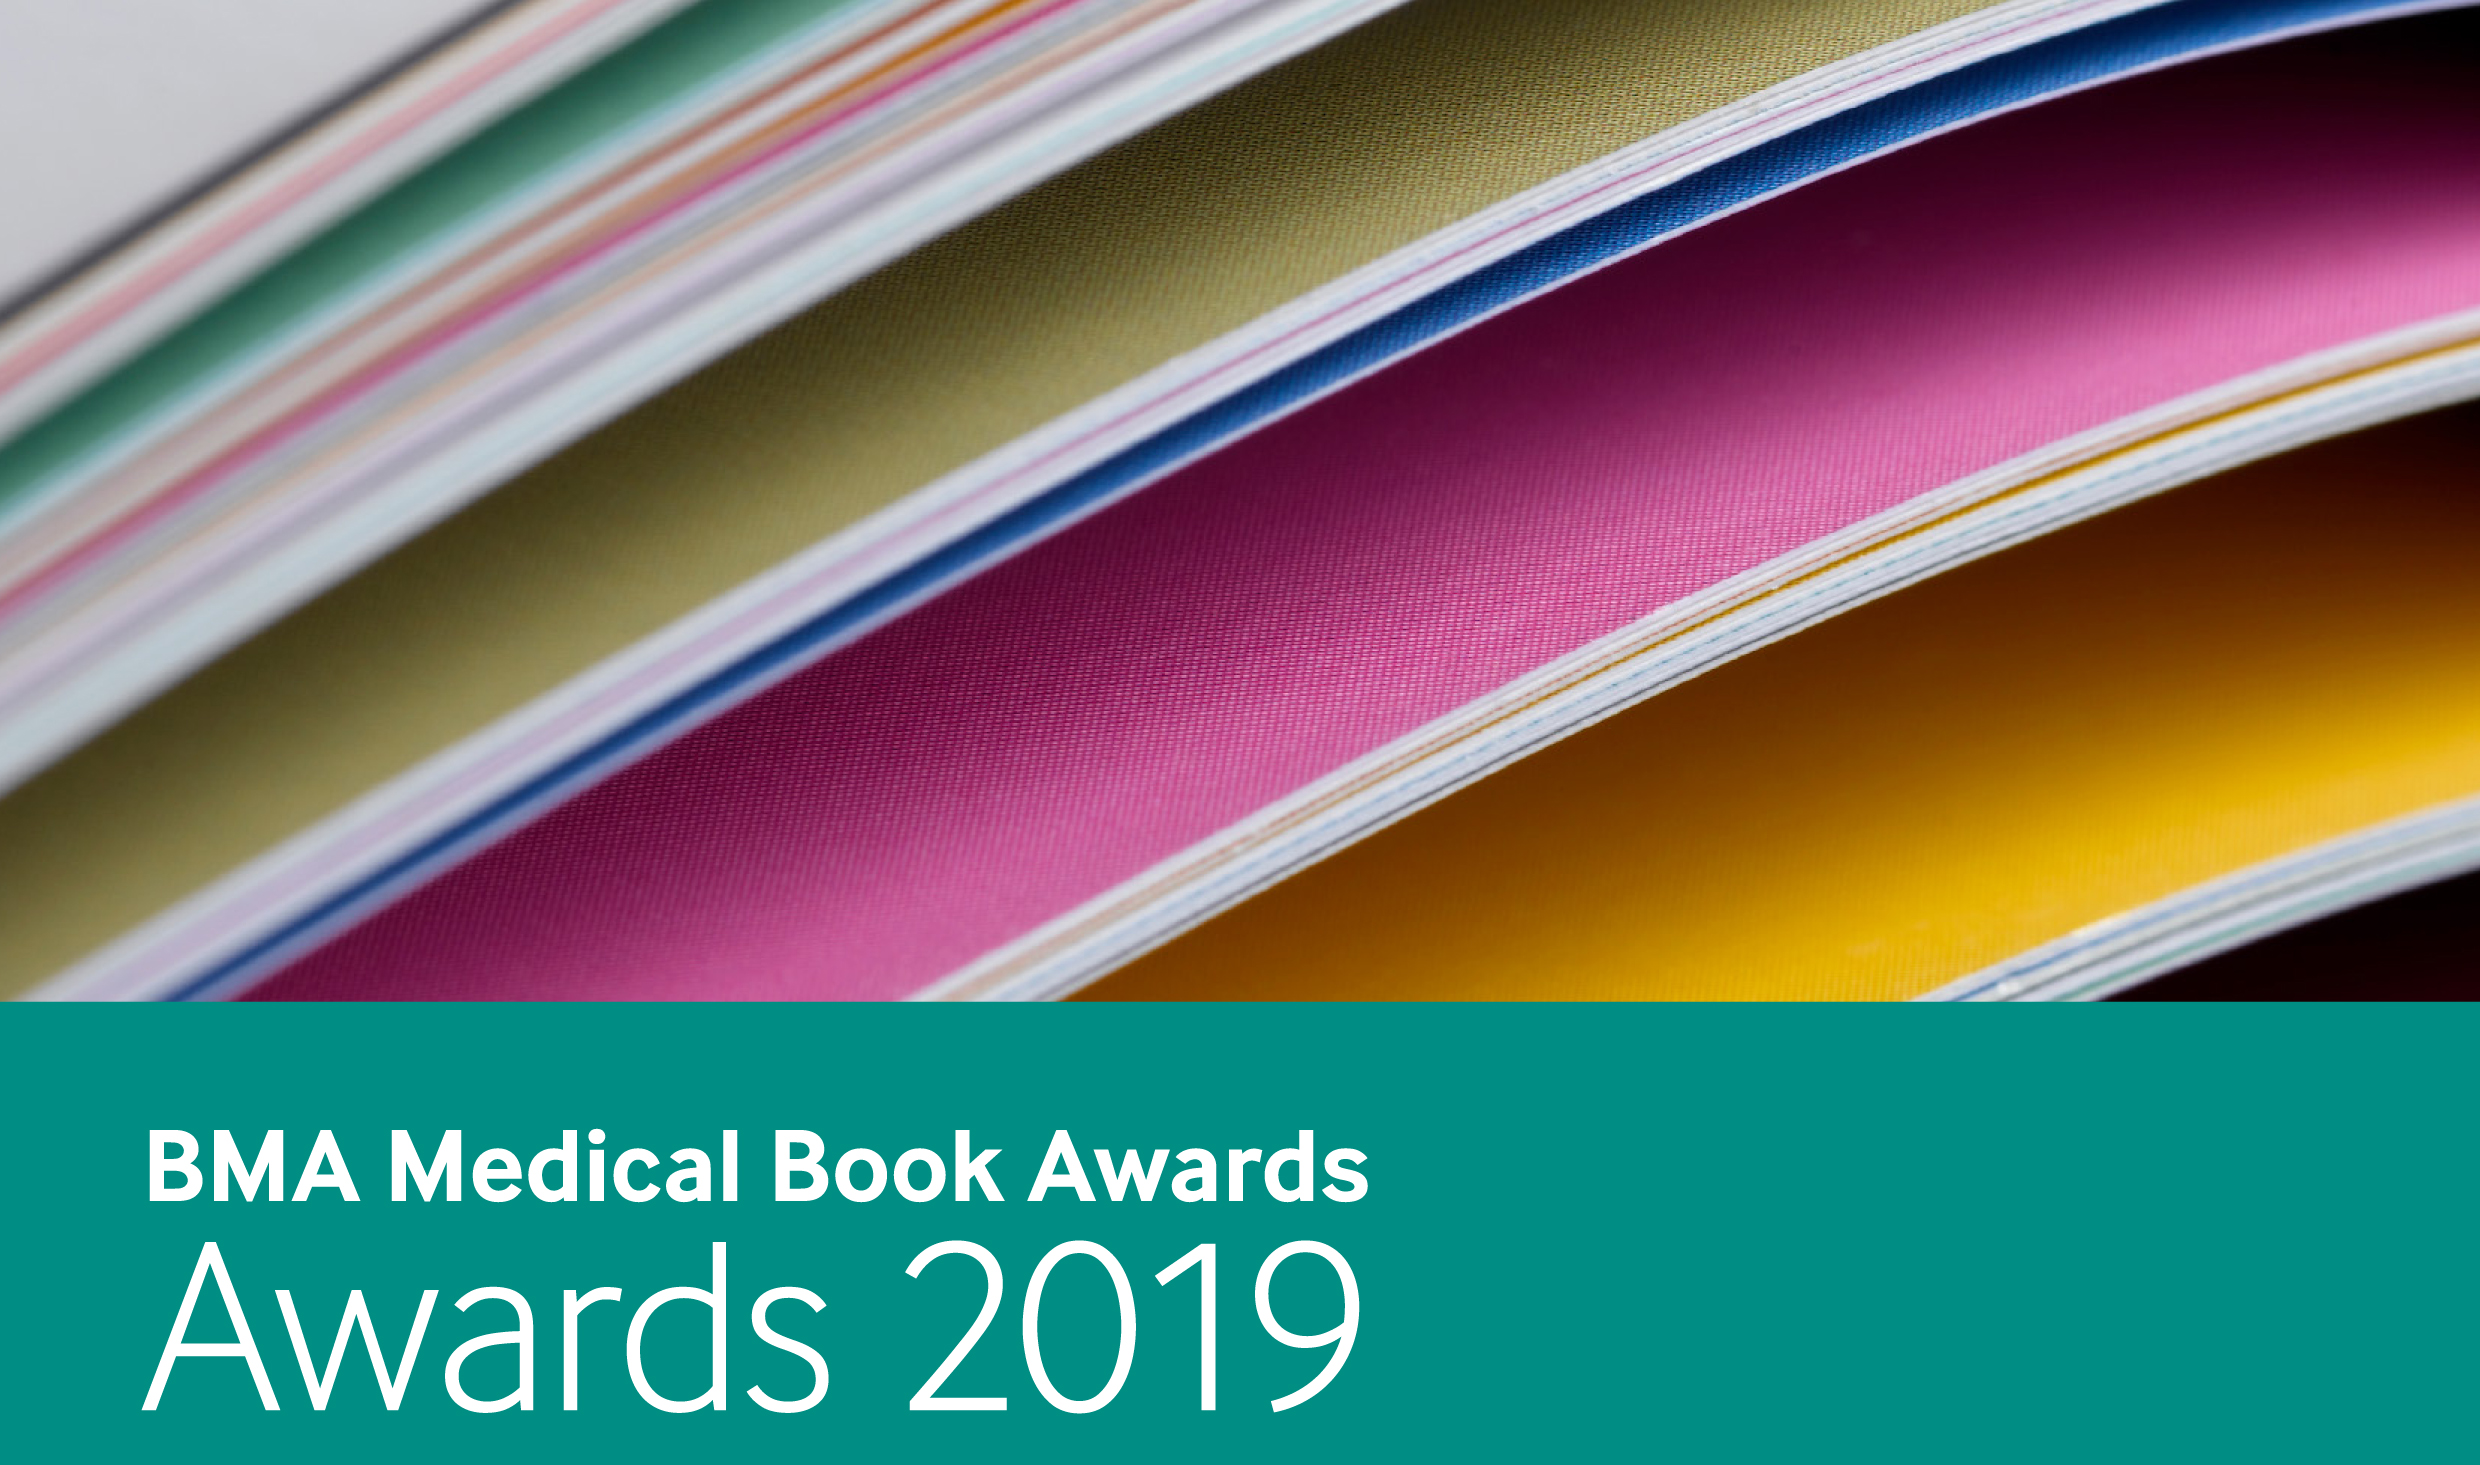 BMA-Programme-BMA-Medical-Book-Awards-2019-Sept-1-1.jpg